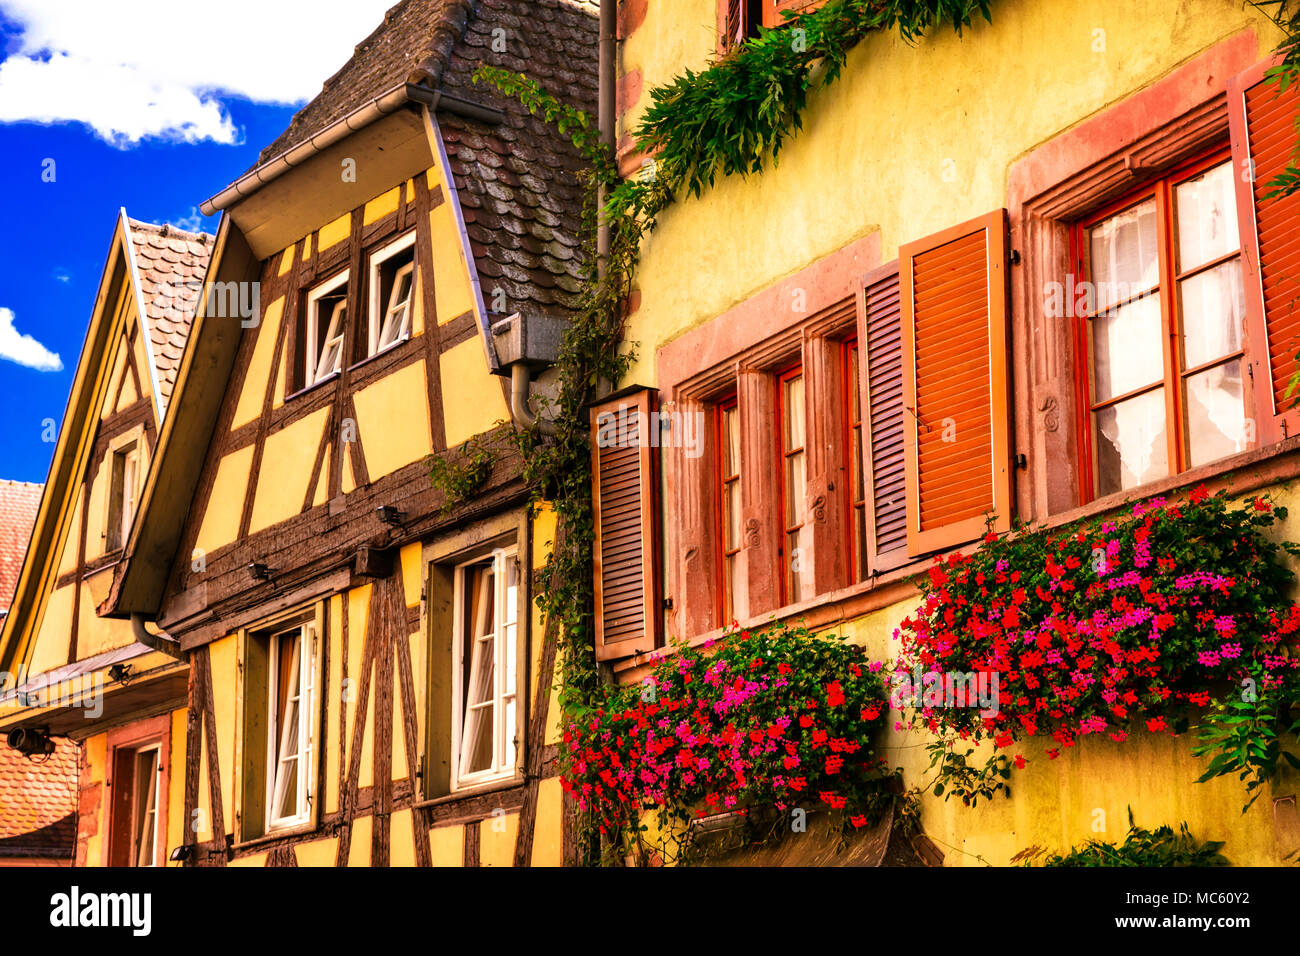 Traditional half timber in Alsace,France. - Stock Image